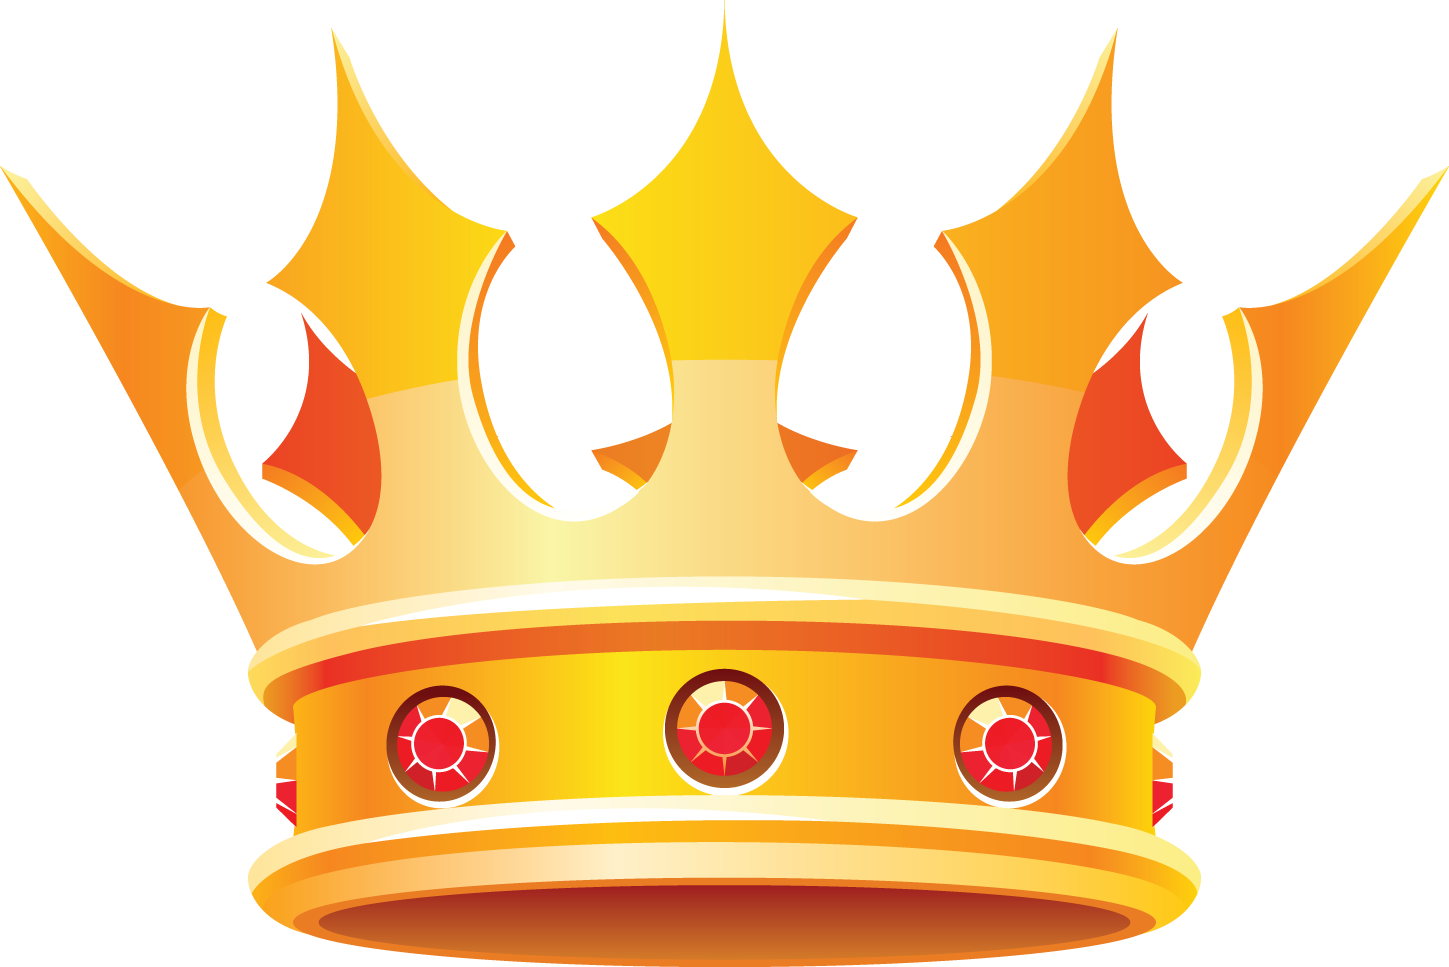 King crown clipart png - ClipArt Best - ClipArt Best